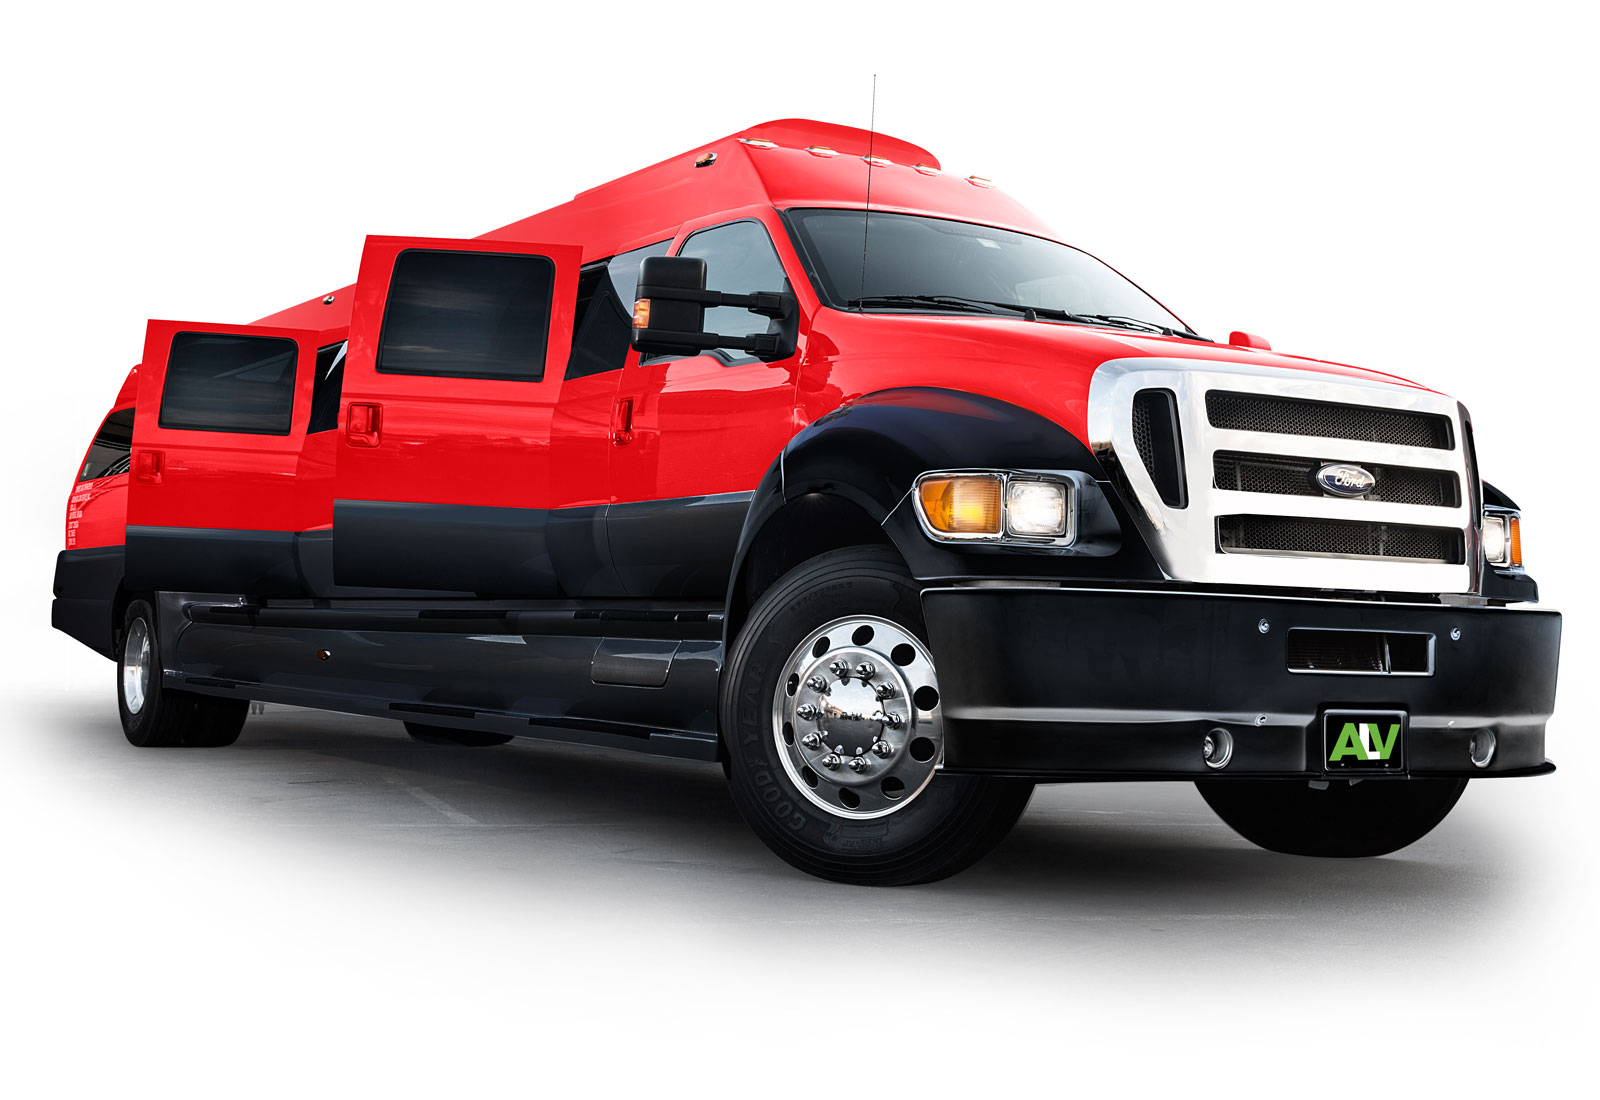 ALV F-650 Super Limo Red